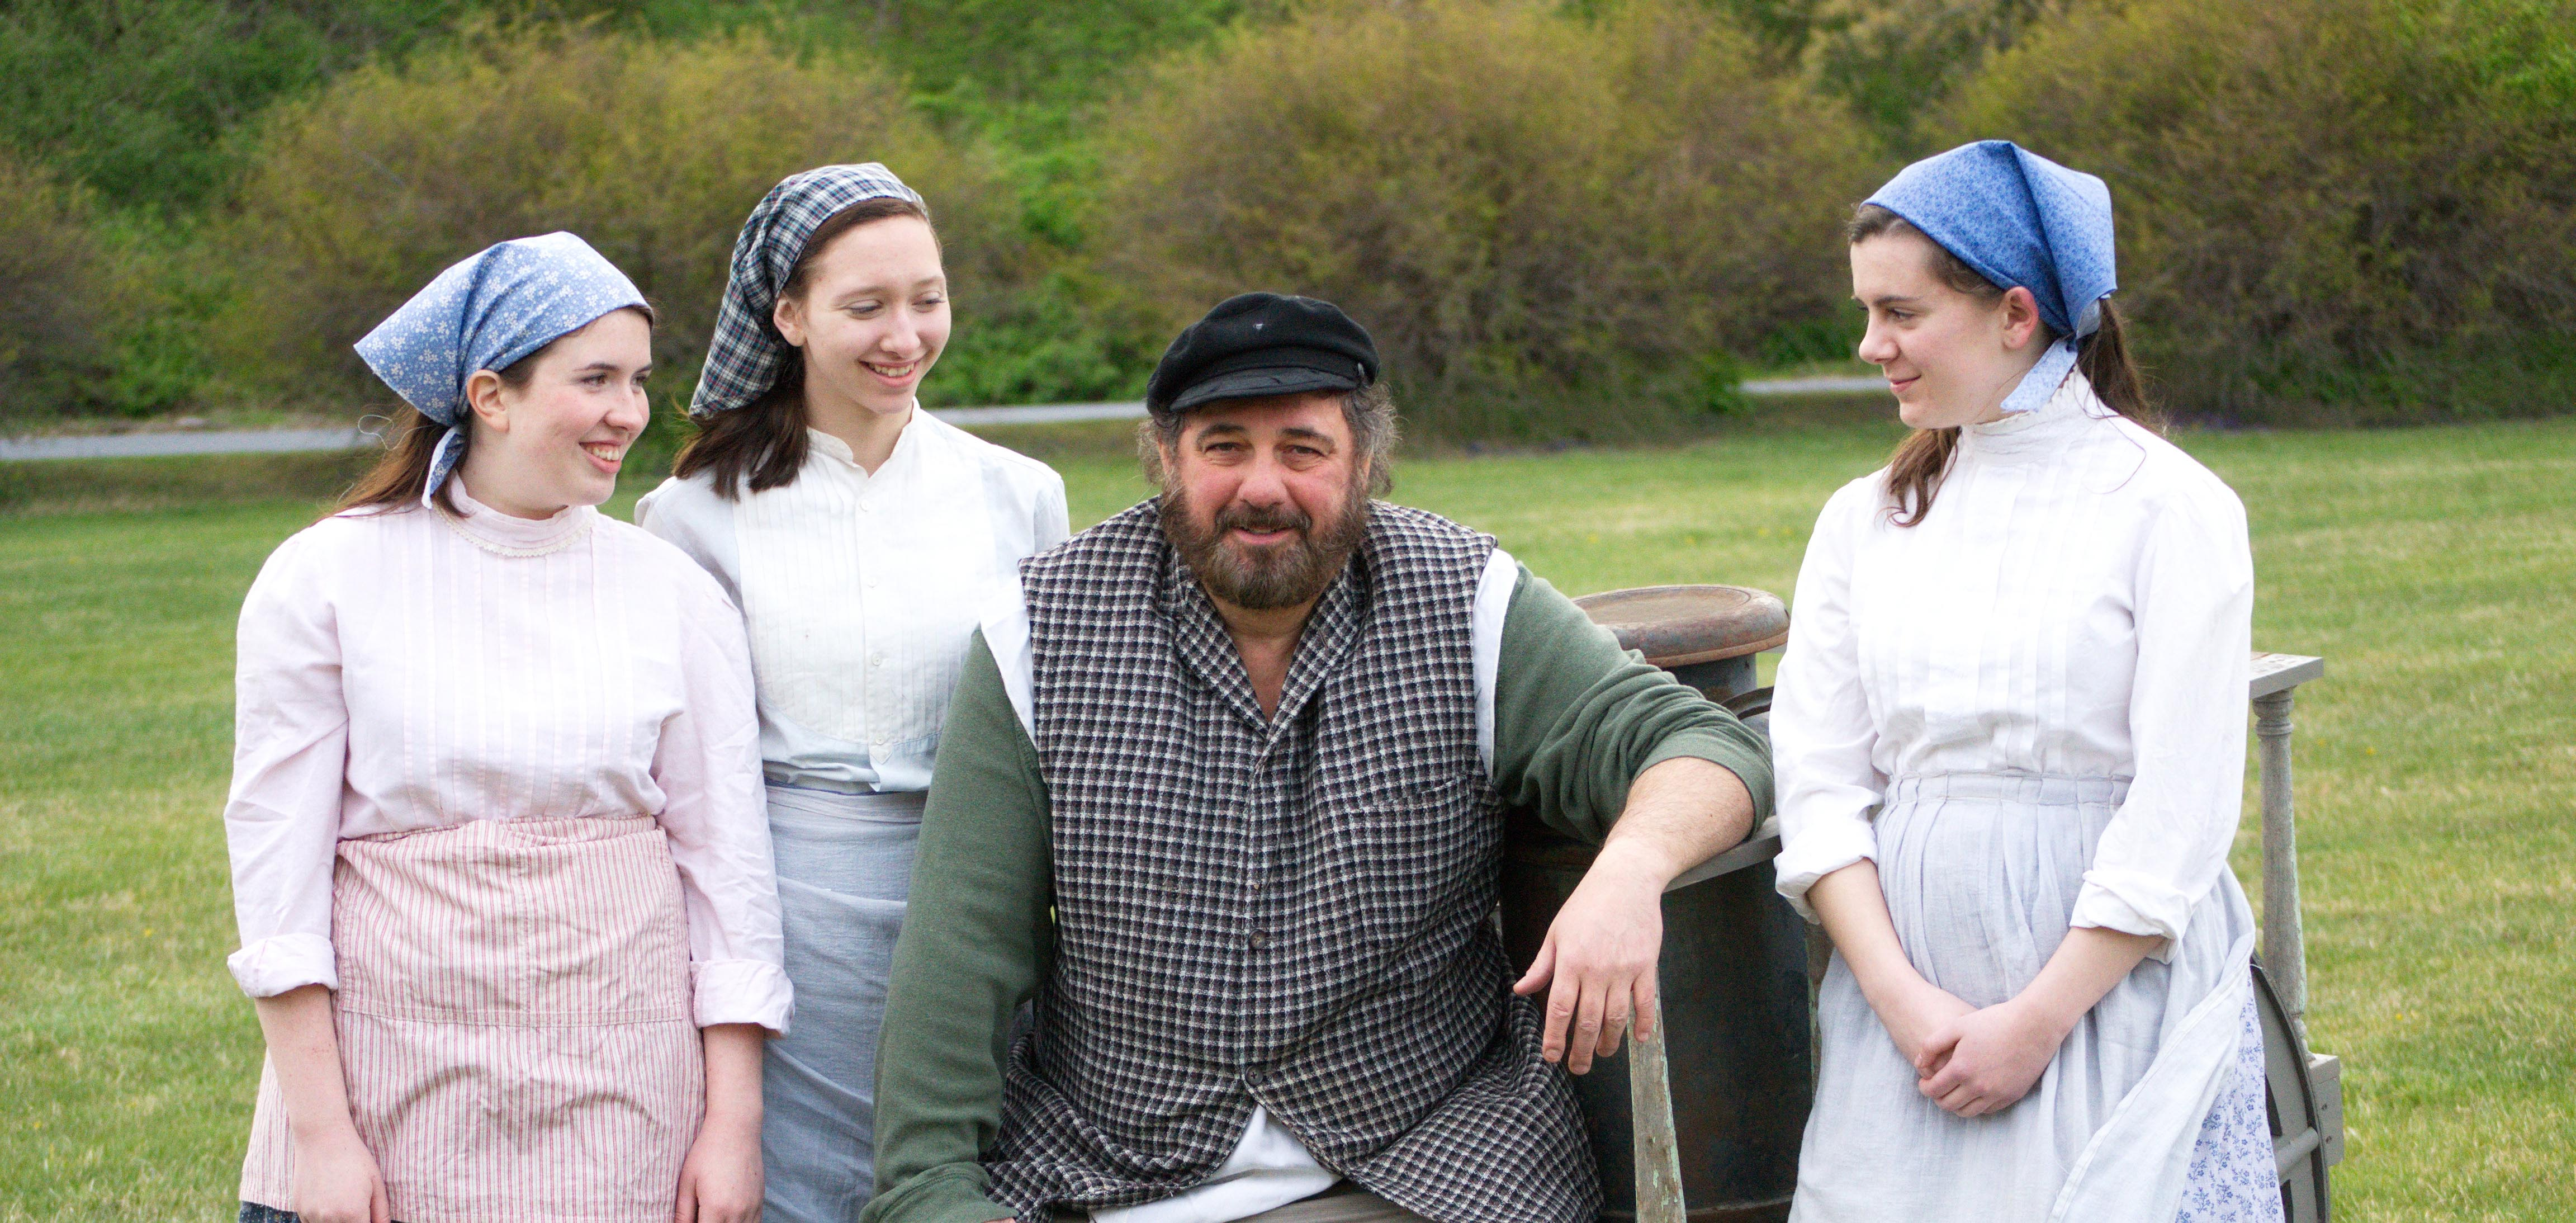 (L to R): Tzeitel (Morgan McKinley), Hodel (Marta Fuerst), Tevye (Johnny Dell), Chava (Mary McCartney) from Fiddler on the Roof.